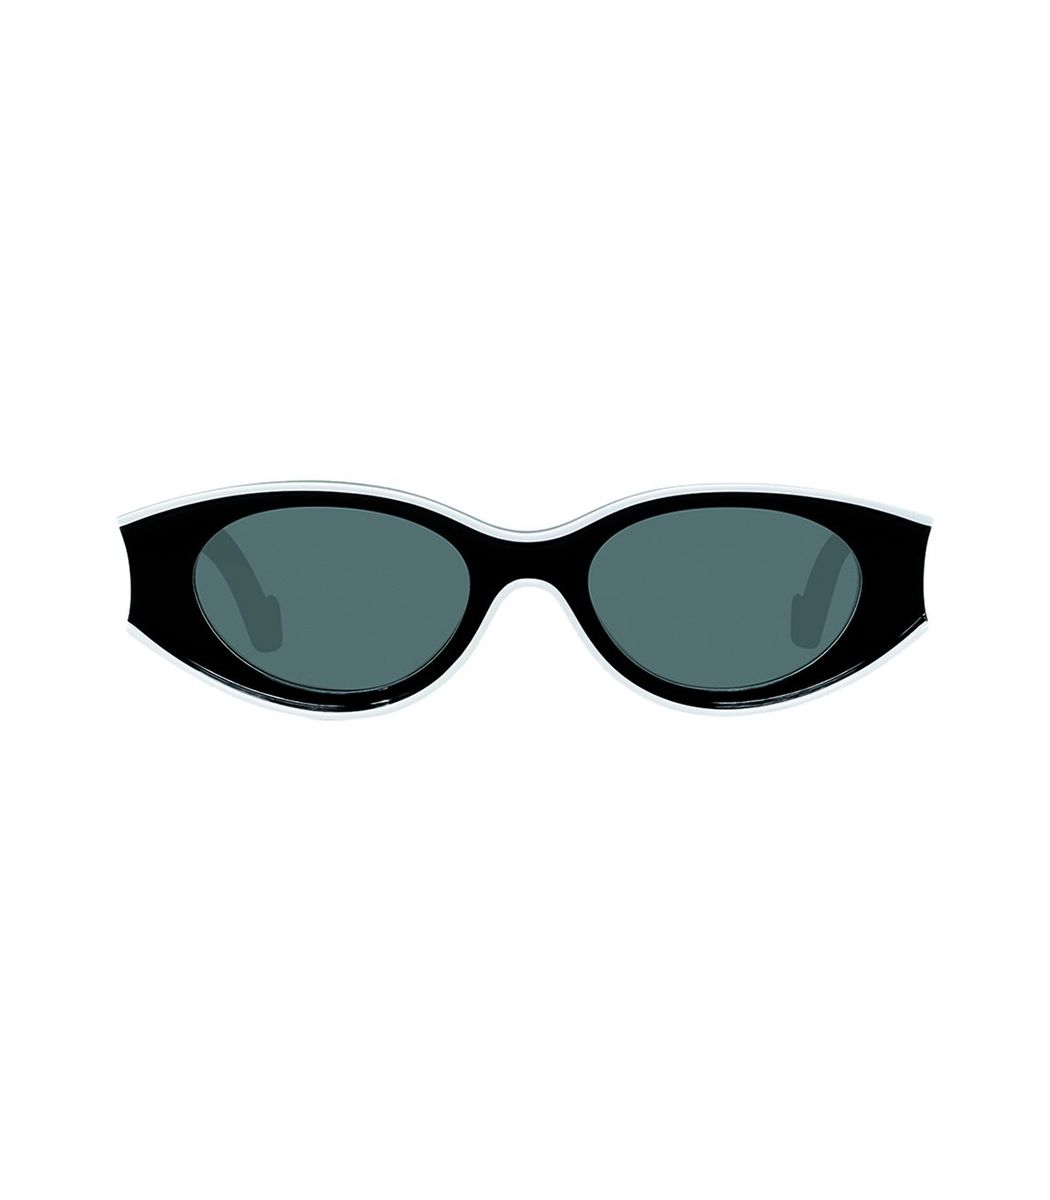 Loewe Black And White Small Oval Sunglasses